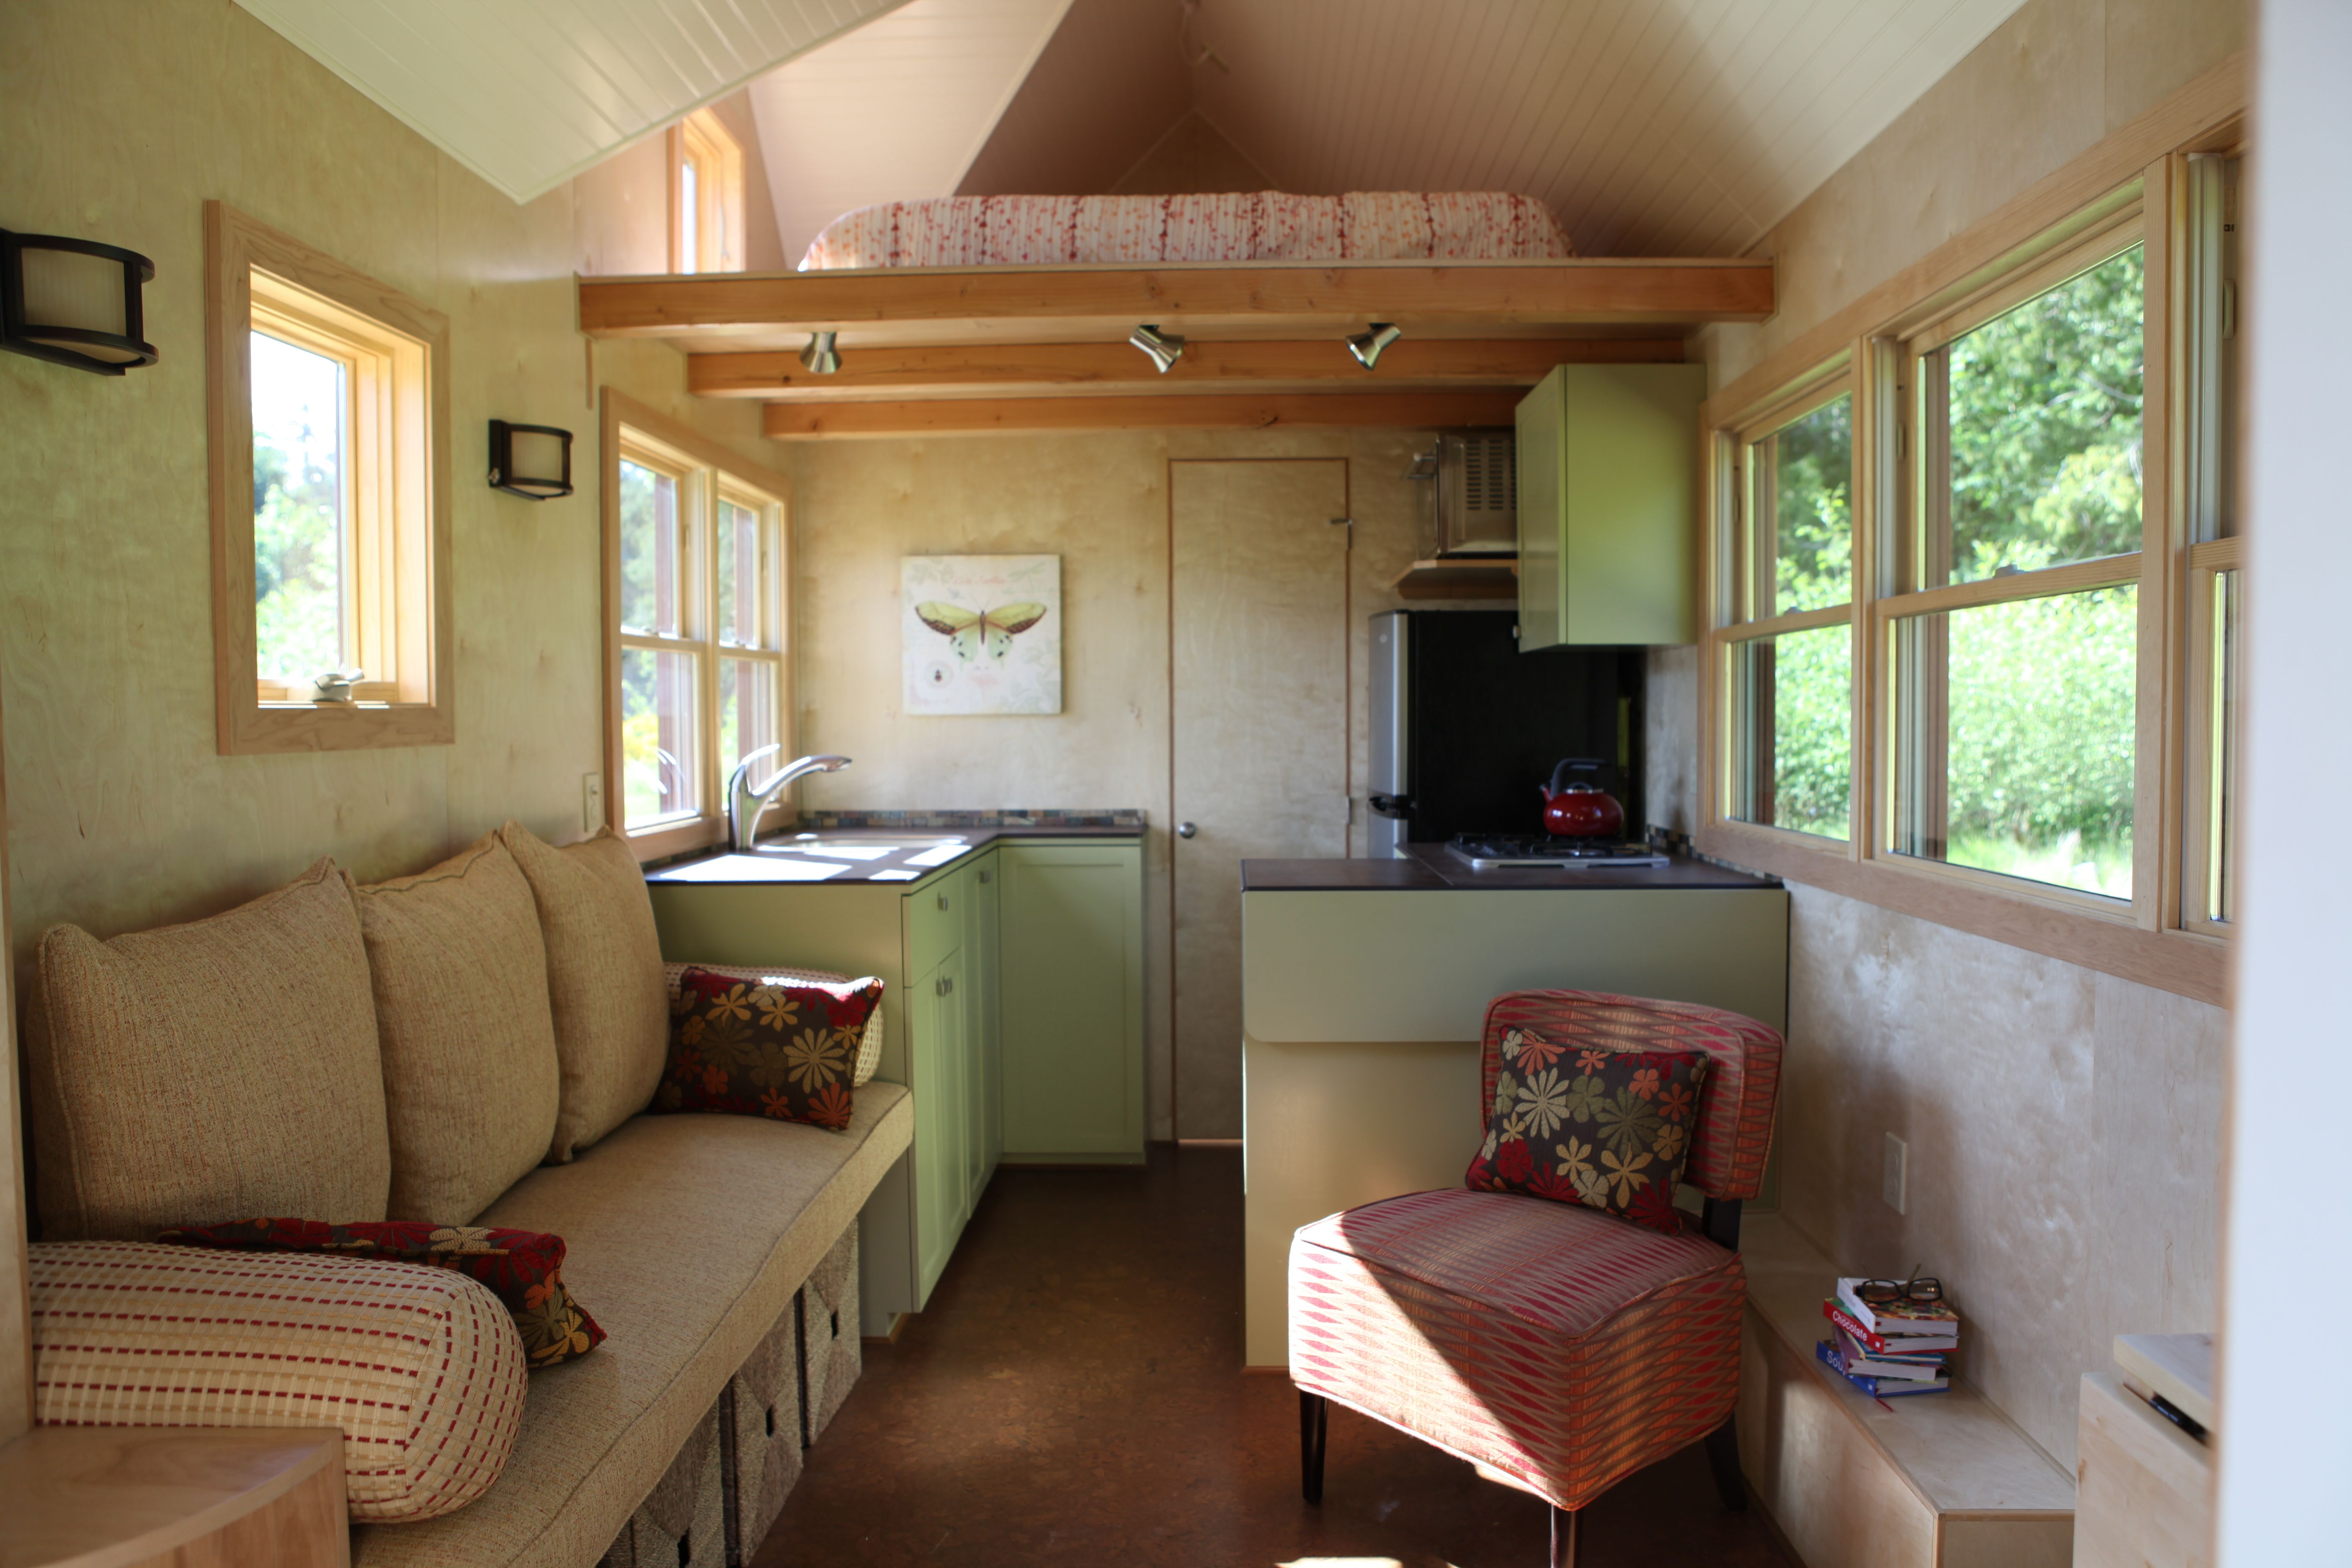 Inside House Ideas Tiny Homes On Pinterest Park Model Homes Tiny Cabins